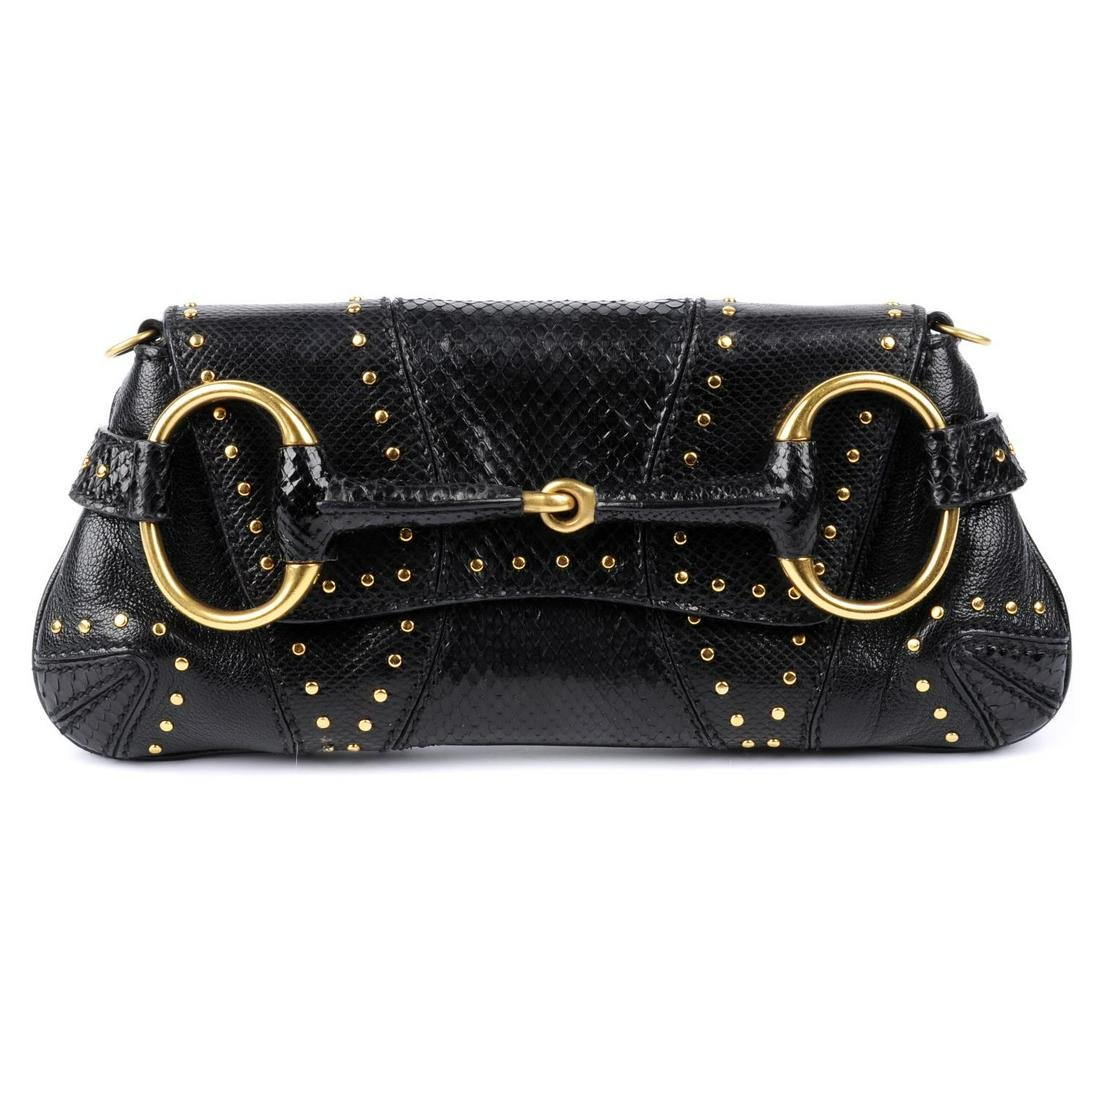 GUCCI - a black Horsebit clutch. Crafted from black